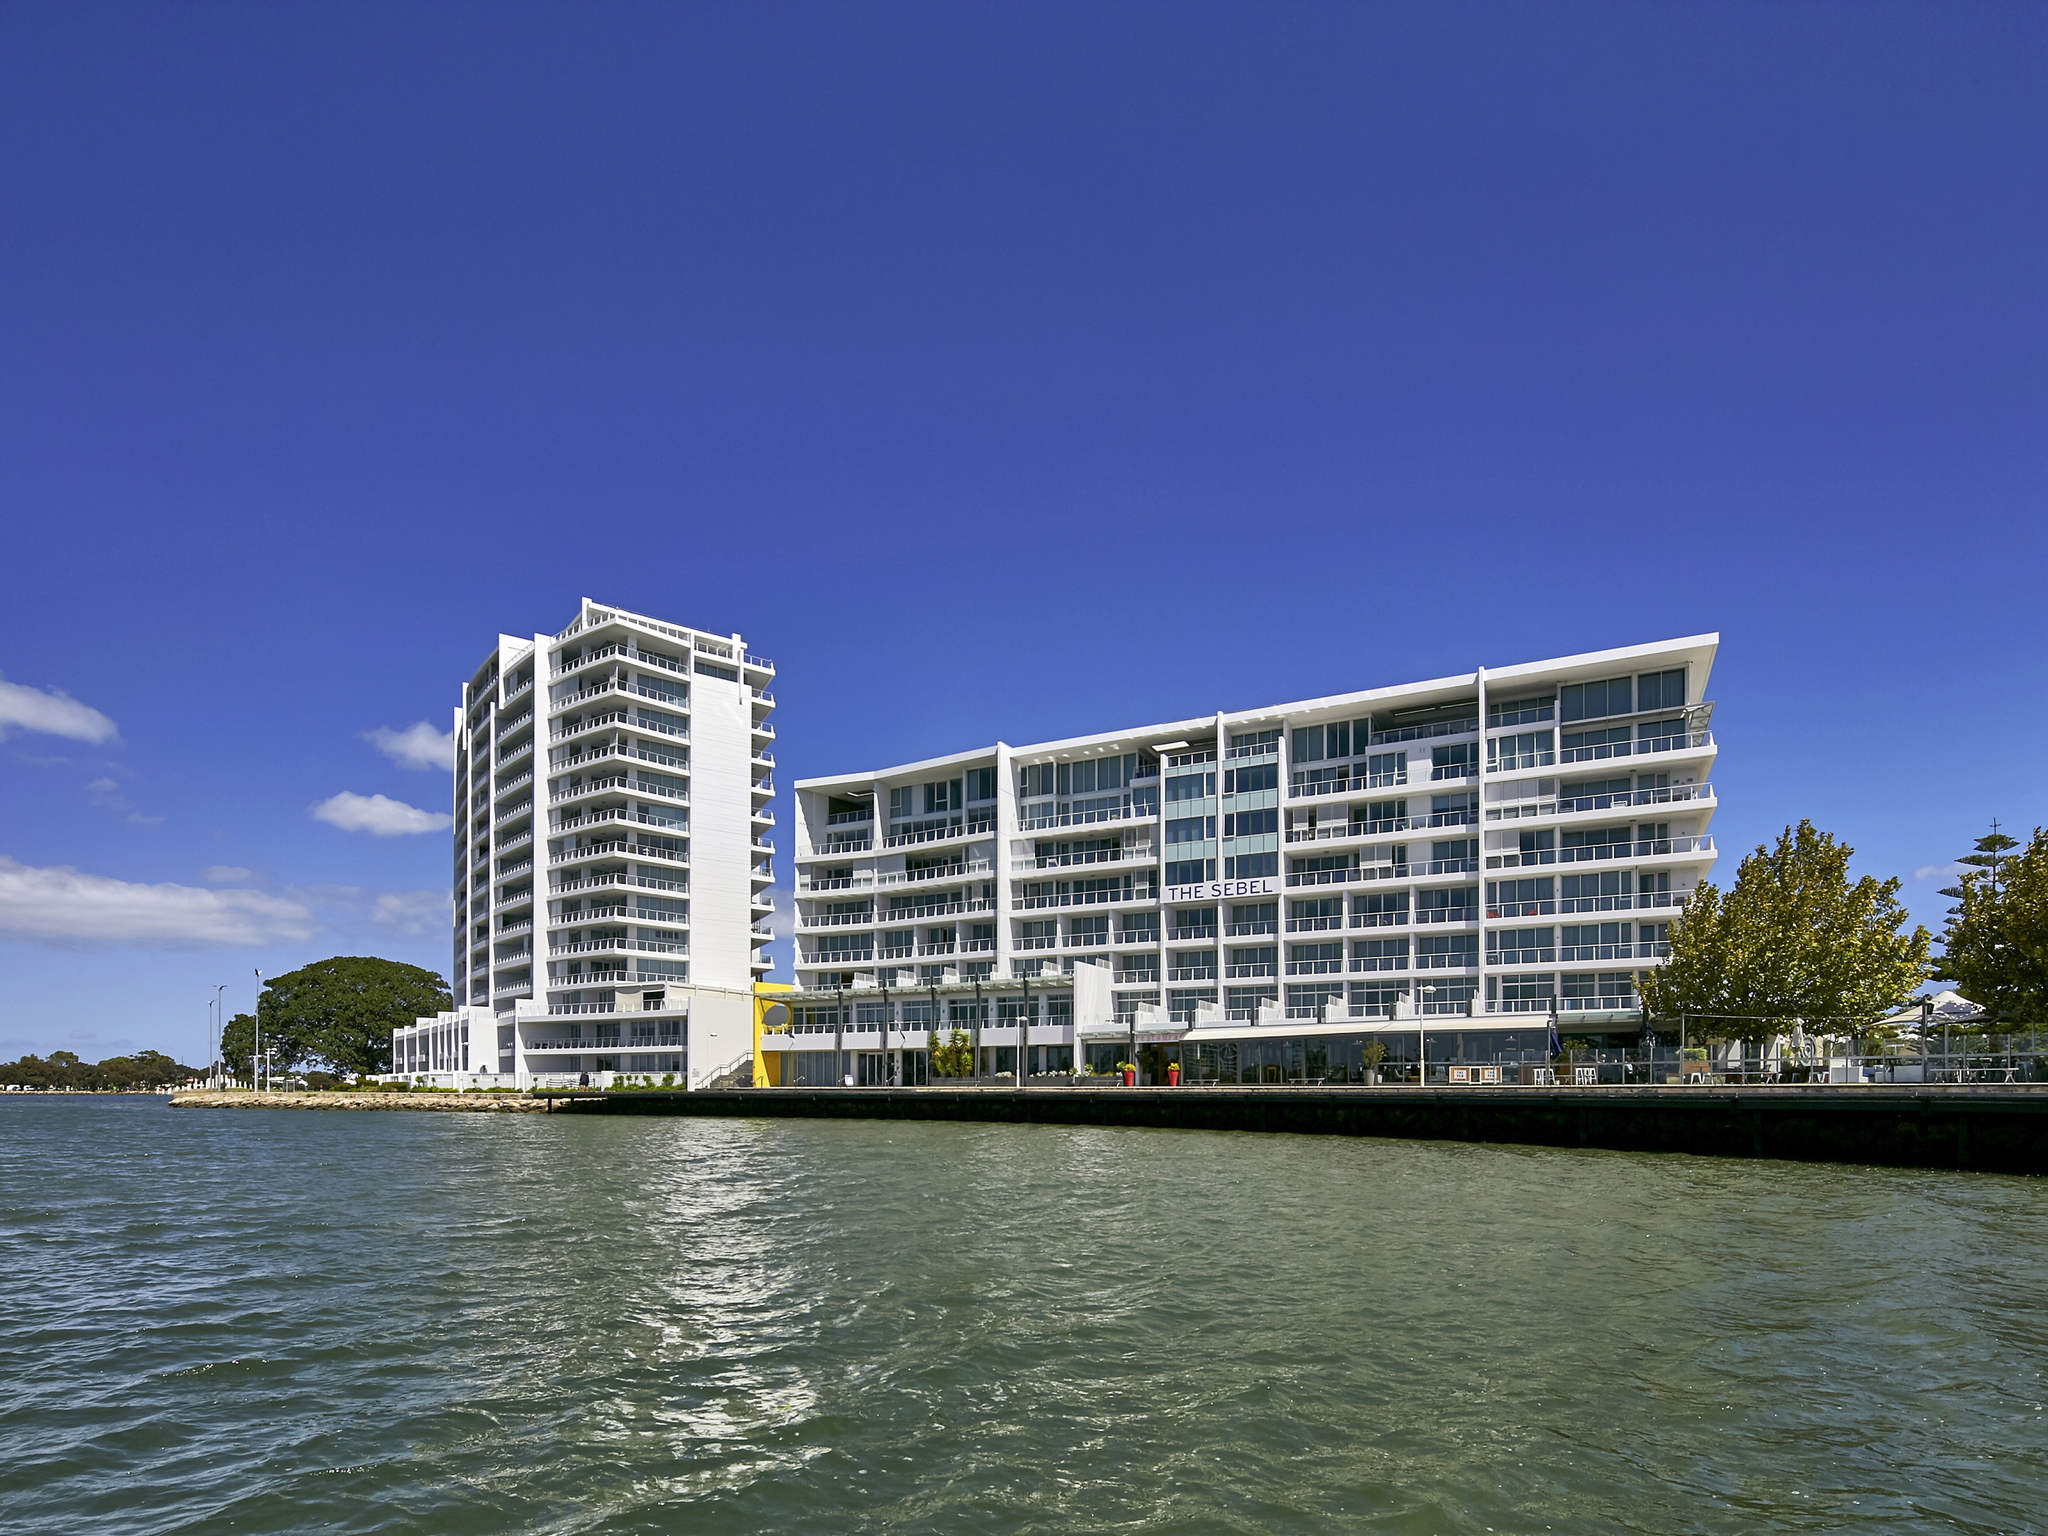 Hotel – The Sebel Mandurah